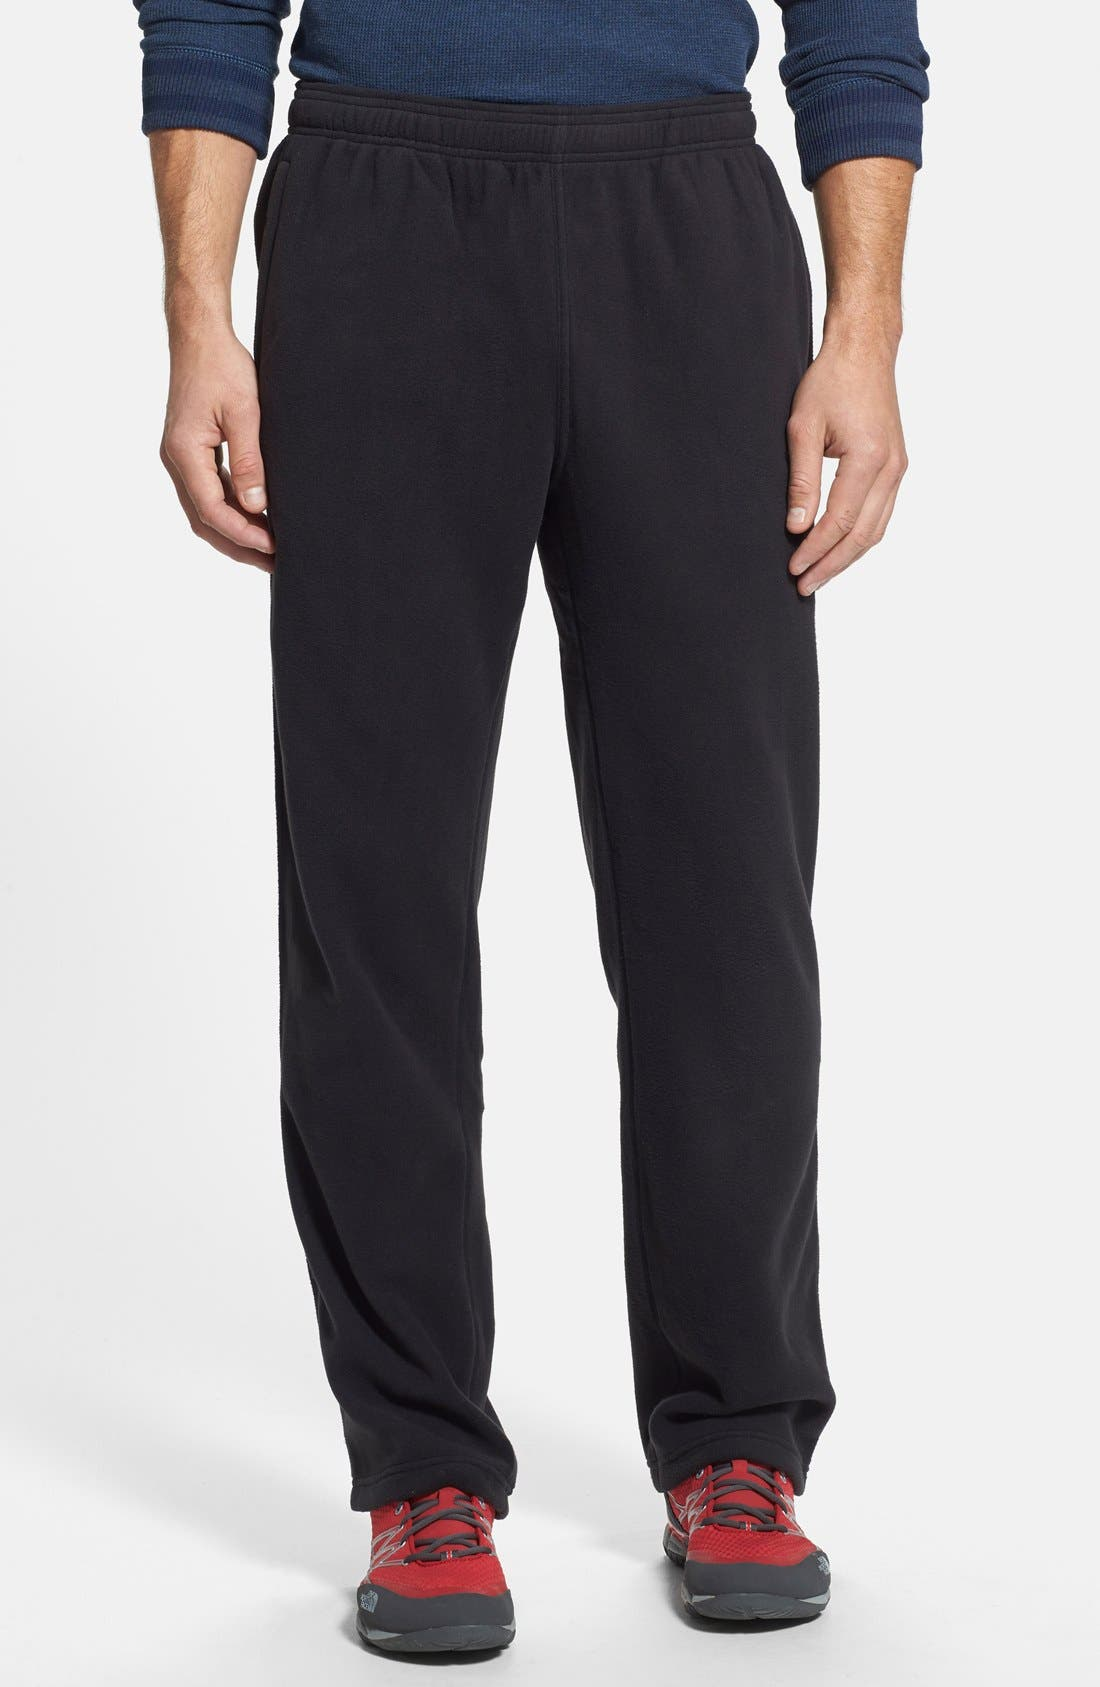 Alternate Image 1 Selected - The North Face 'TKA 100' Fleece Pants